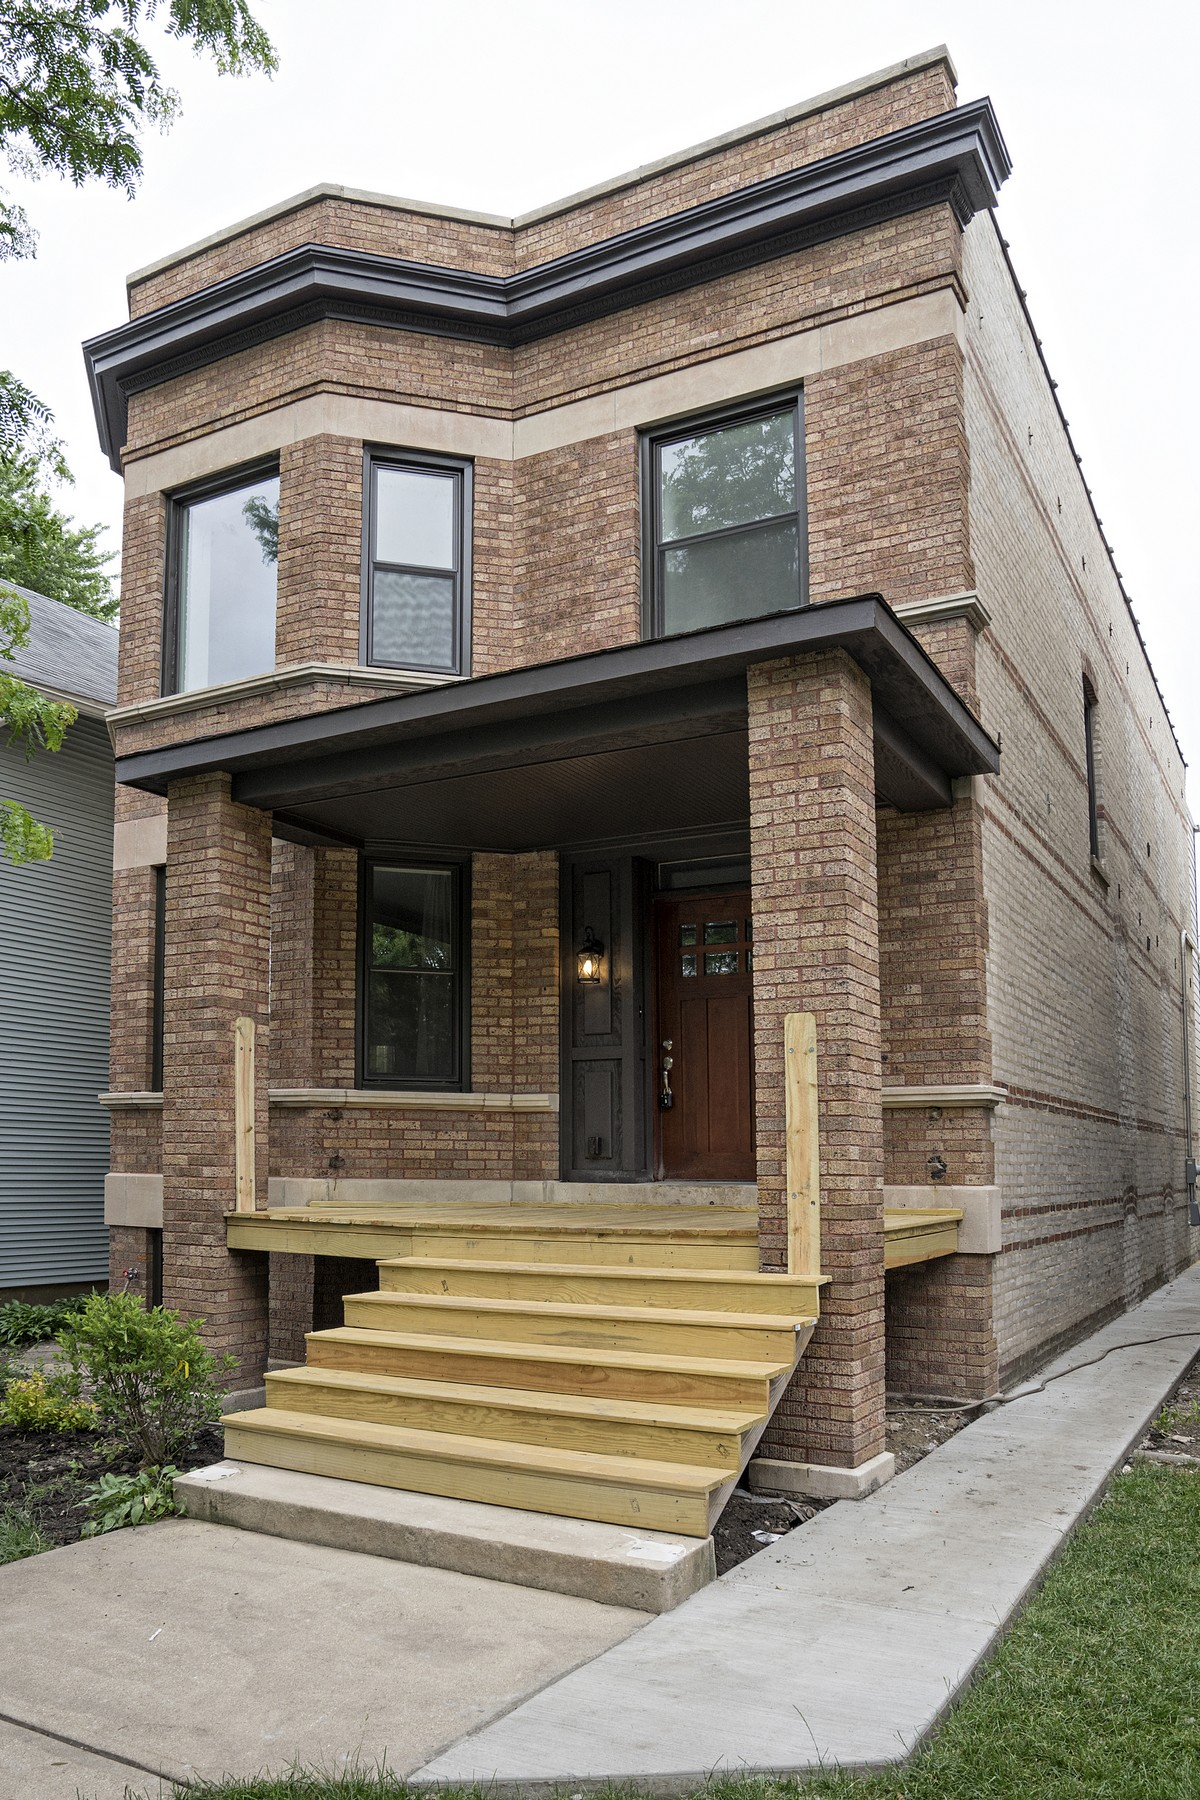 단독 가정 주택 용 매매 에 Gorgeous New Rehabbed Home 4534 N Maplewood Avenue Lincoln Square, Chicago, 일리노이즈, 60625 미국